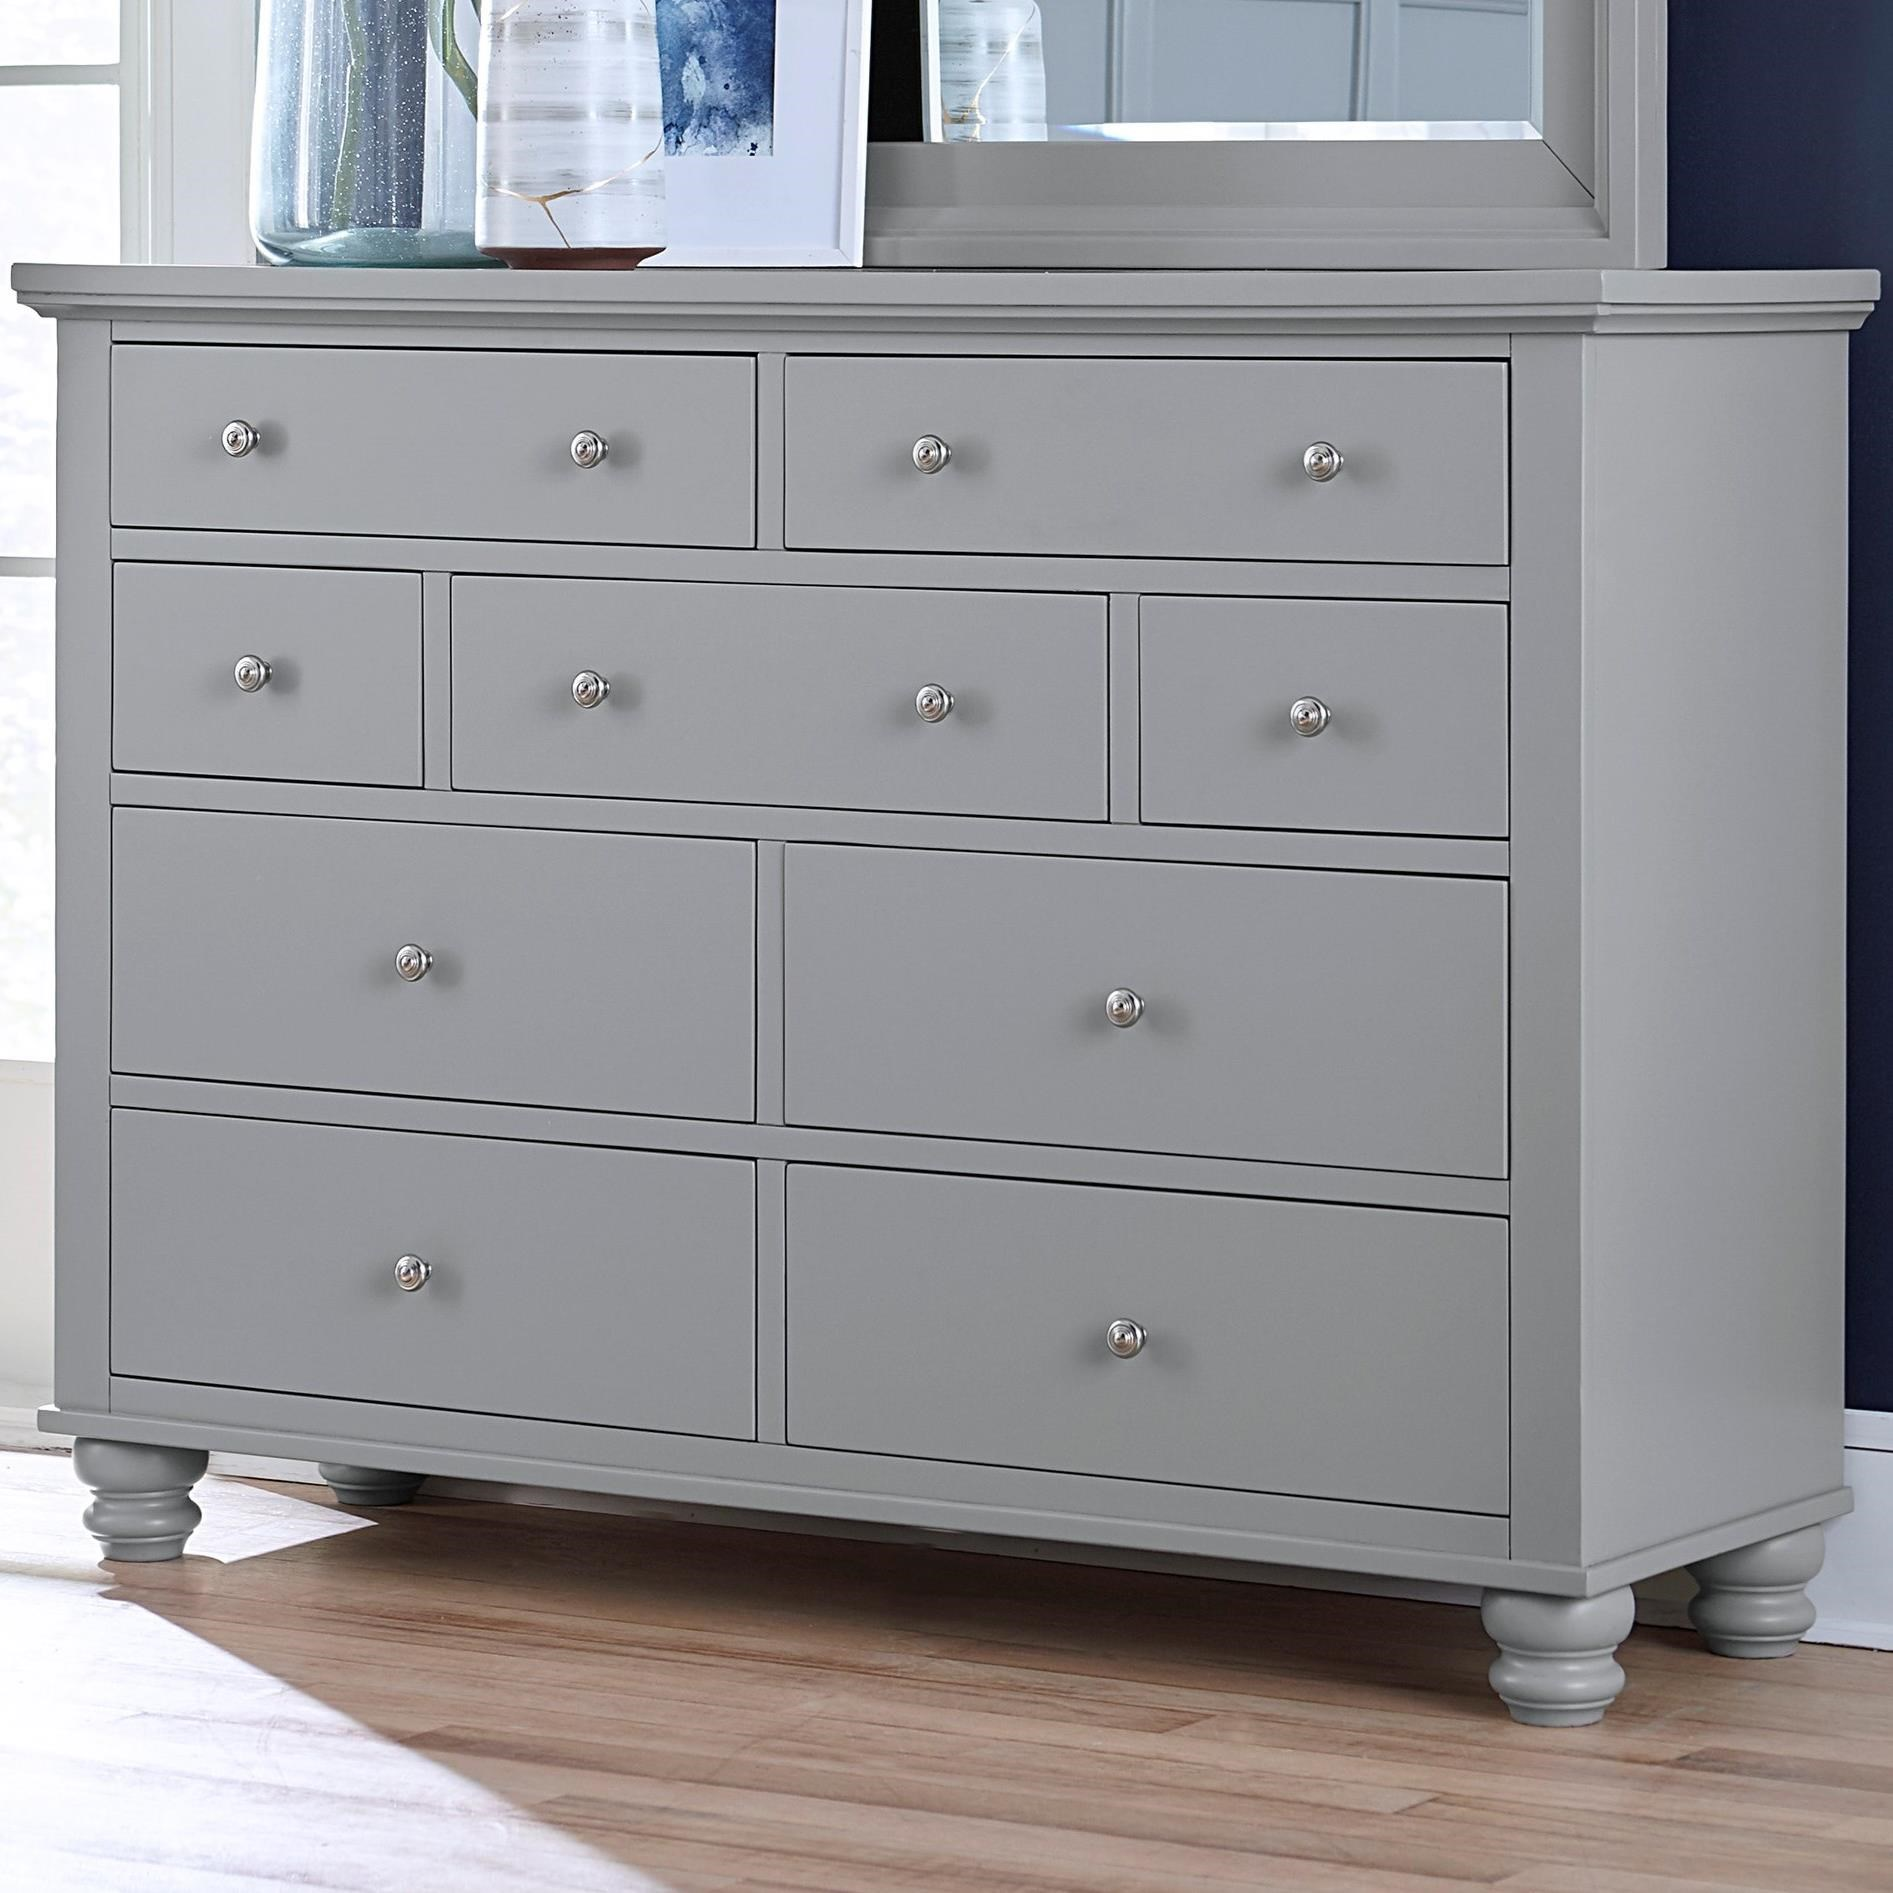 Cambridge Chesser by Aspenhome at Walker's Furniture